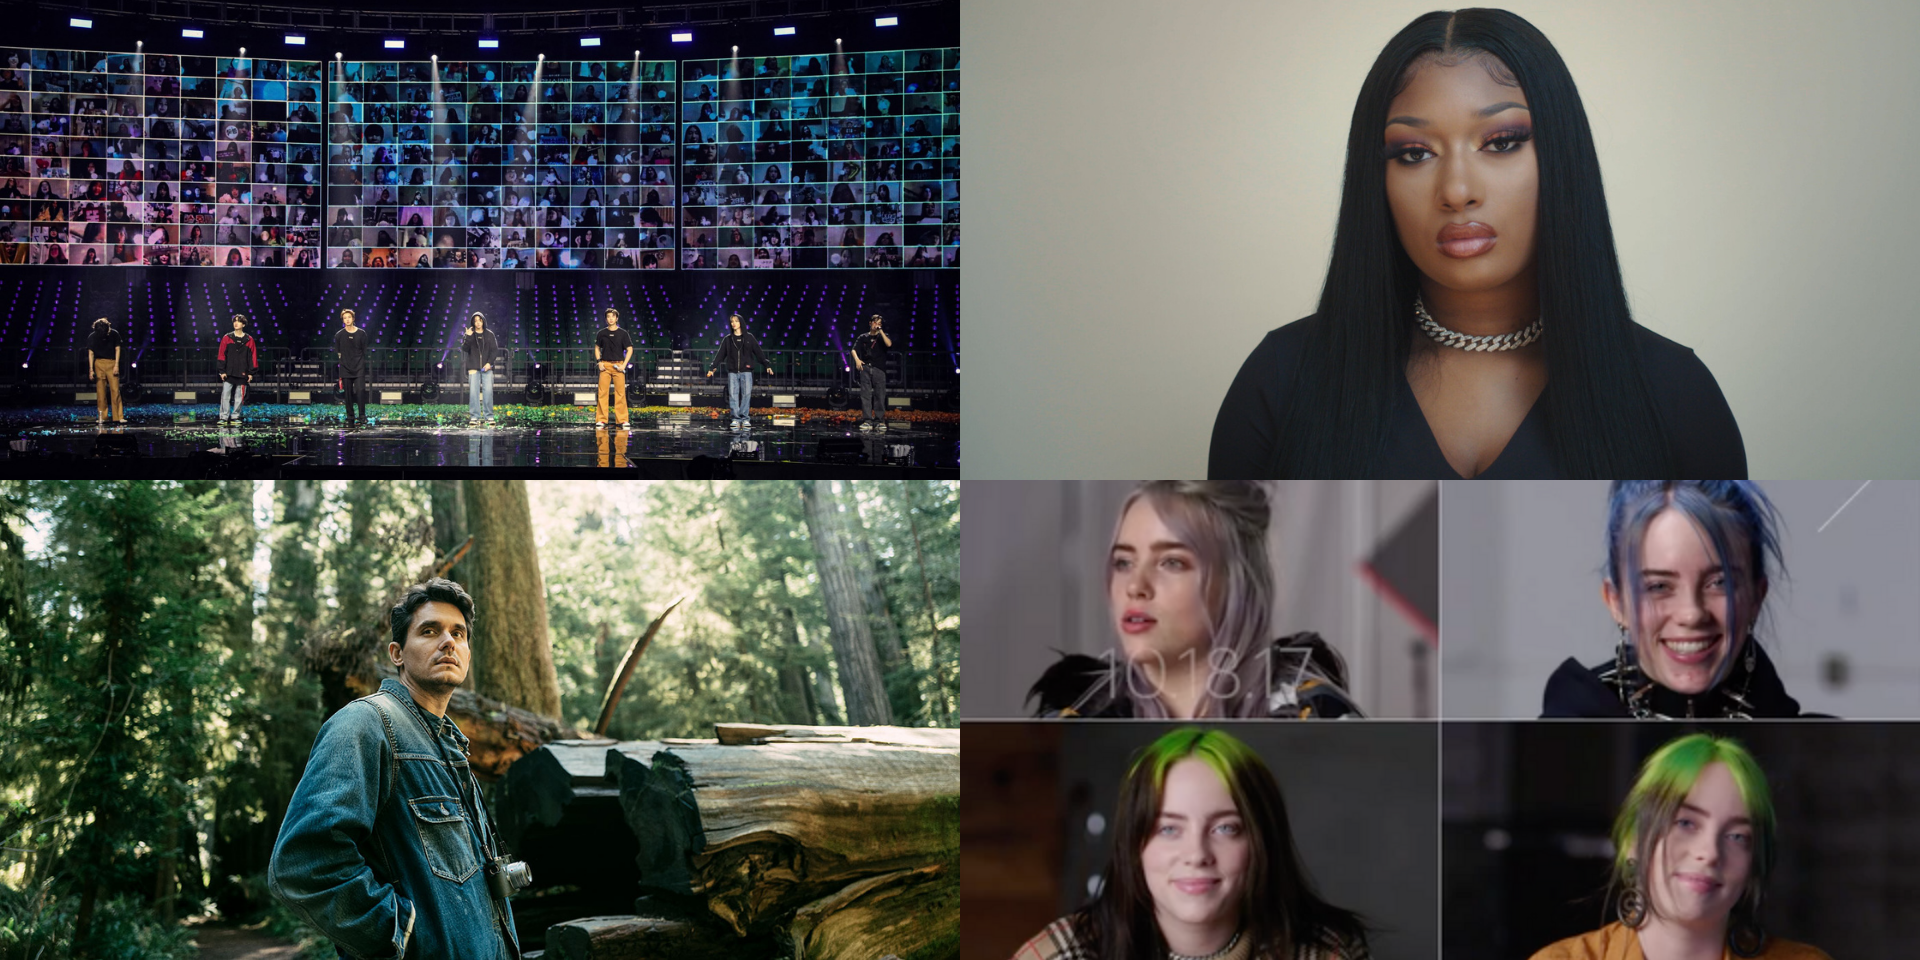 Billie Eilish, BTS, John Mayer, Megan Thee Stallion, and more are nominated at the 25th Webby Awards